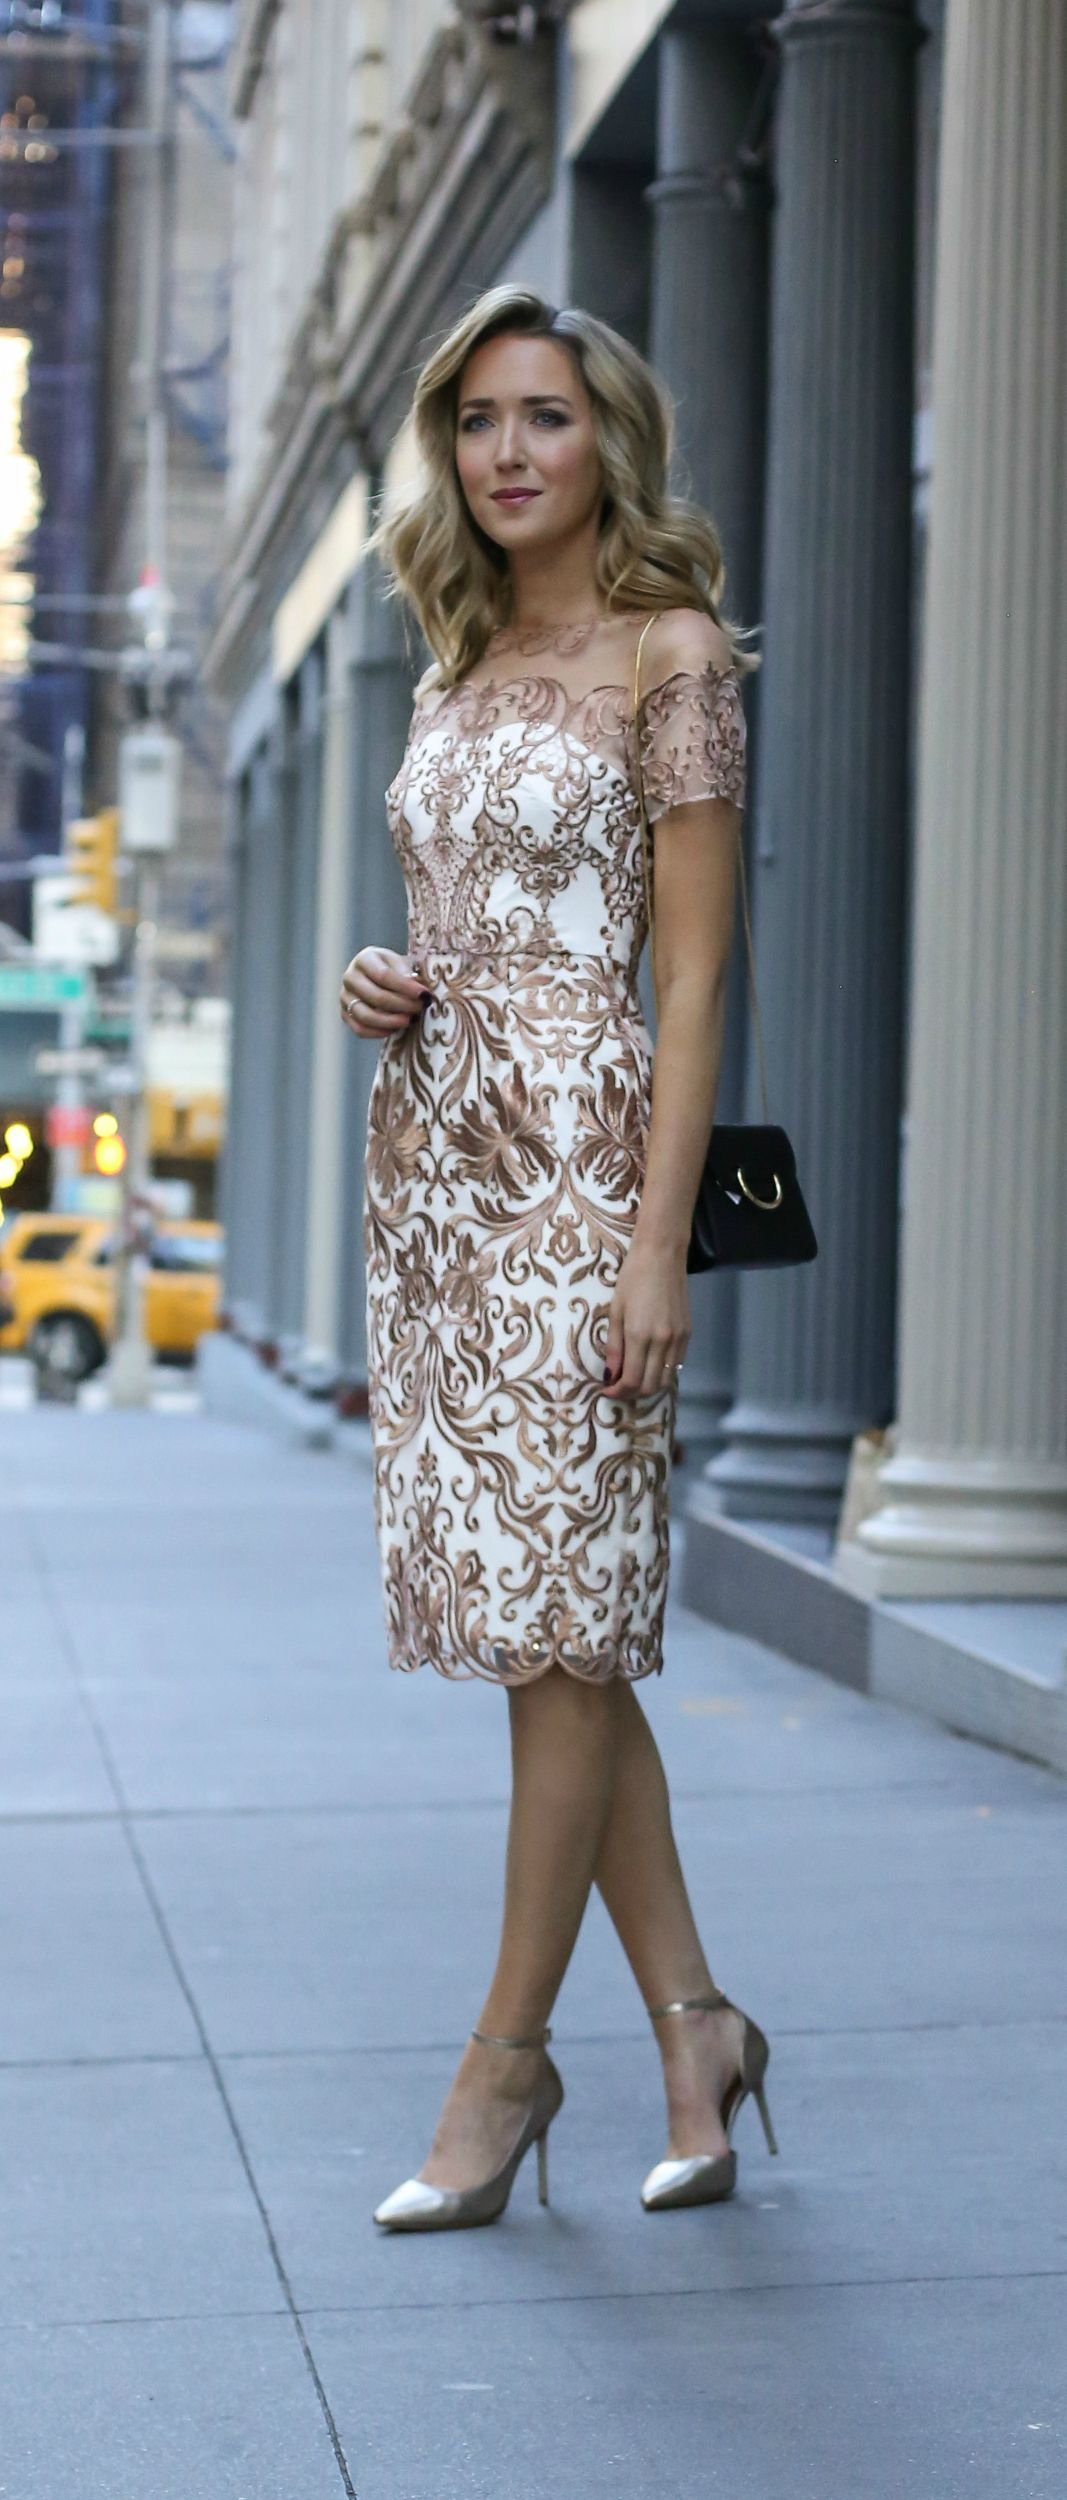 Rehearsal Dinner Dress for the Bride. Rose gold and white lace ...